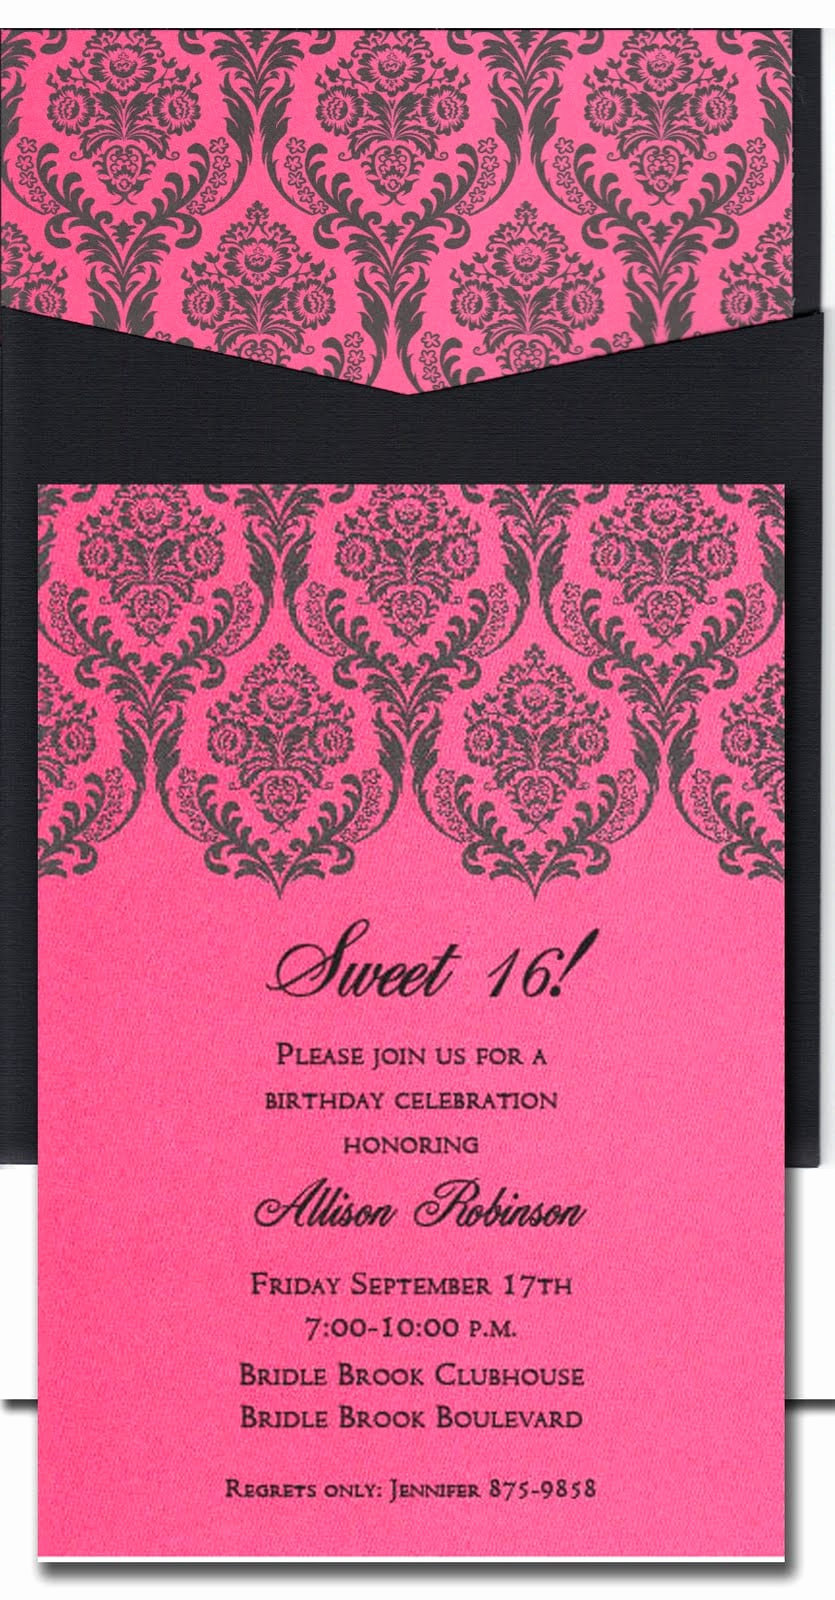 Sweet Sixteen Invitation Template Awesome Sweet Sixteen Invitation Wording